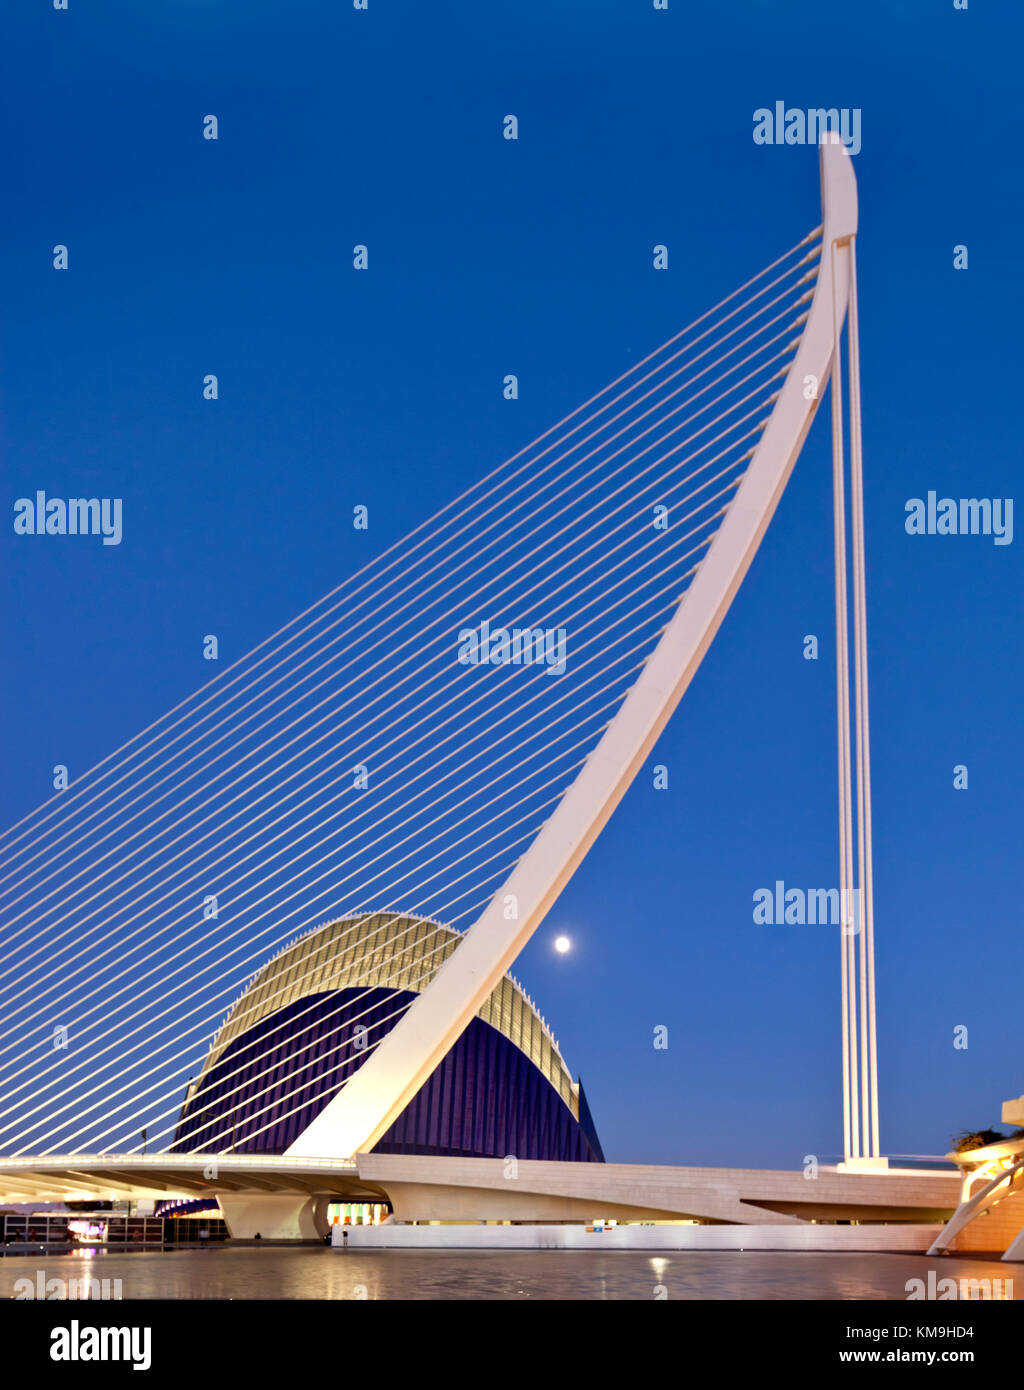 Agora, Puente de l Assut, bridge, City of sciences, Calatrava, Valencia, Spain Stock Photo